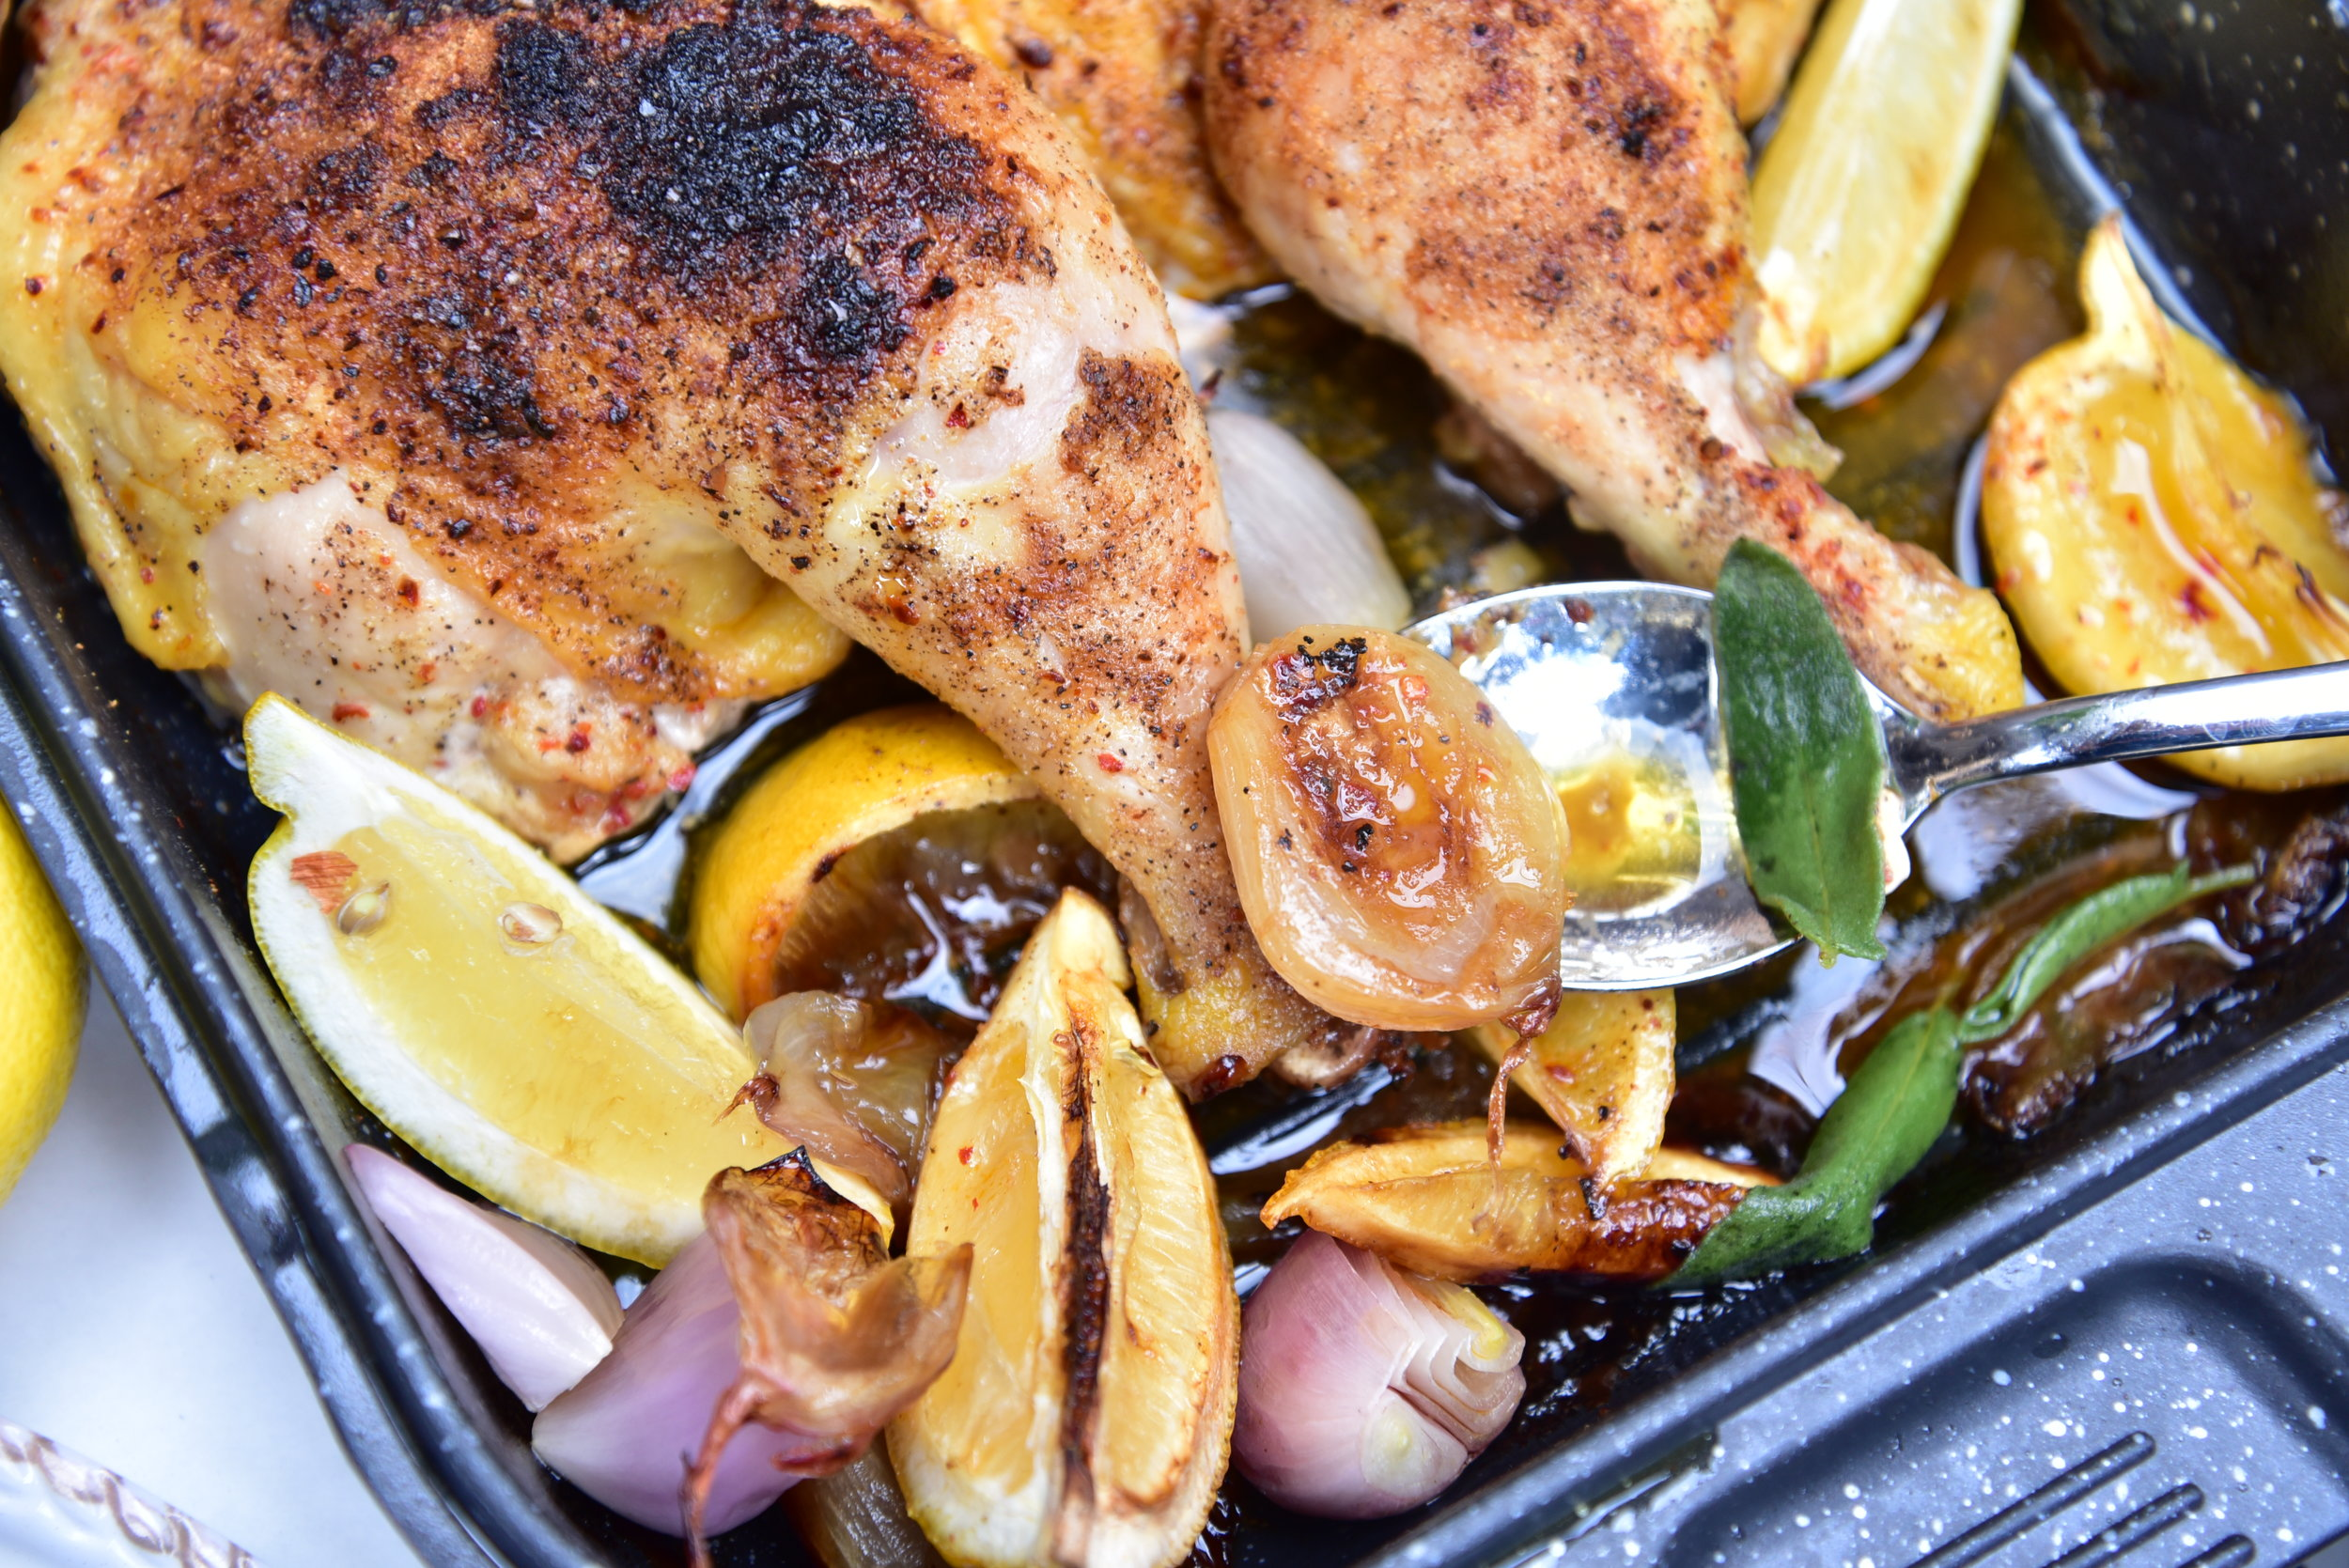 Yes, the chicken tastes terrific. But can you imagine how delicious the shallots and lemons taste, too, after roasting with that bird? Try.